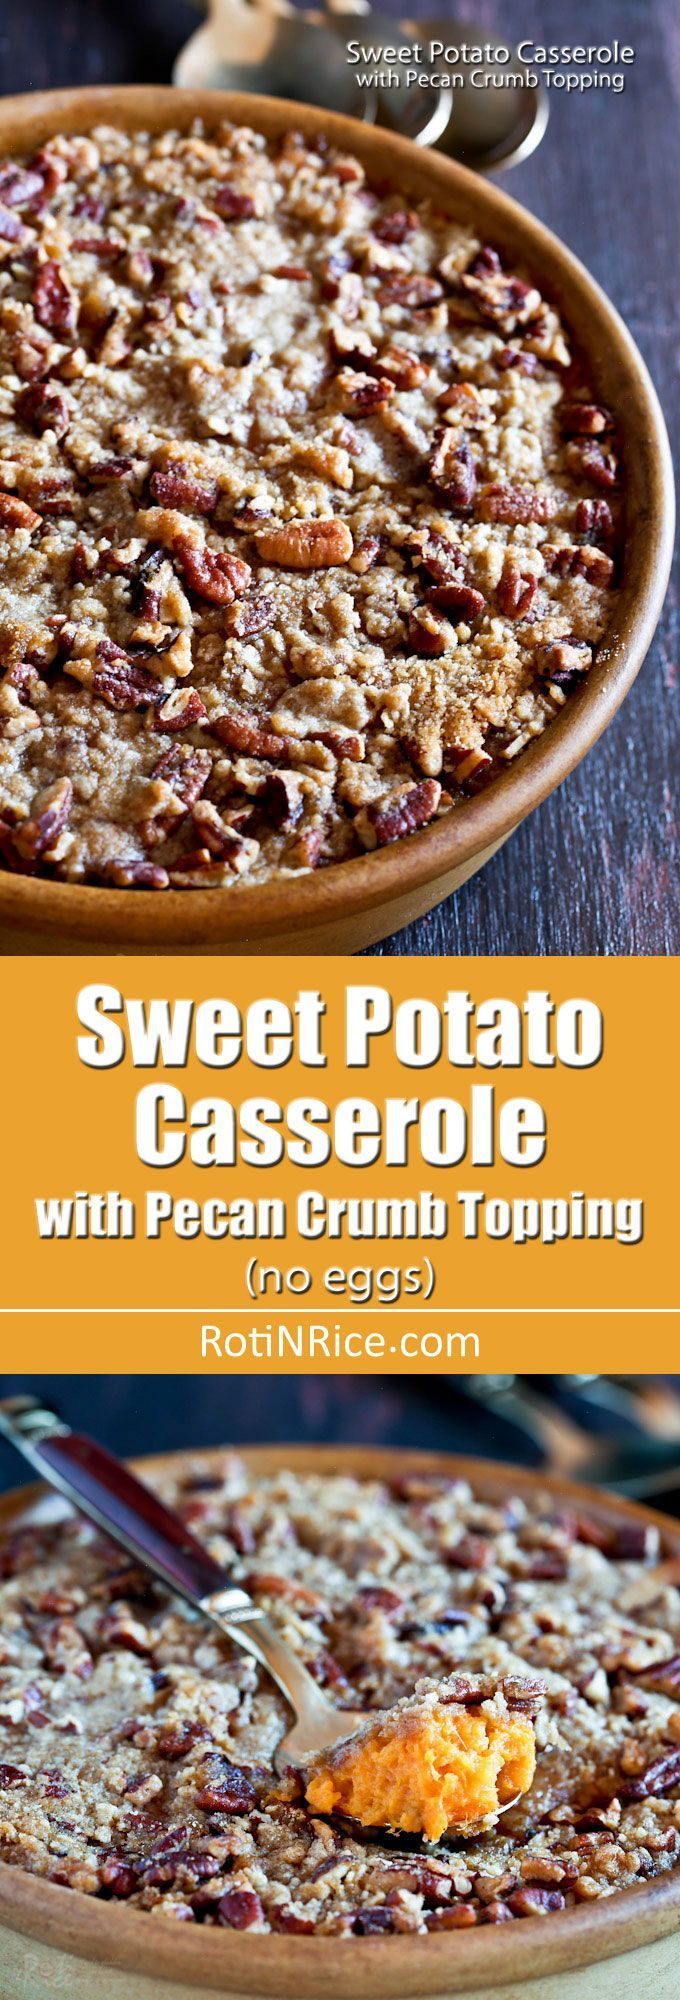 This eggless Sweet Potato Casserole with Pecan Crumb Topping is like a dessert. It is creamy, not too sweet, and perfect for your holiday table.   RotiNRice.com